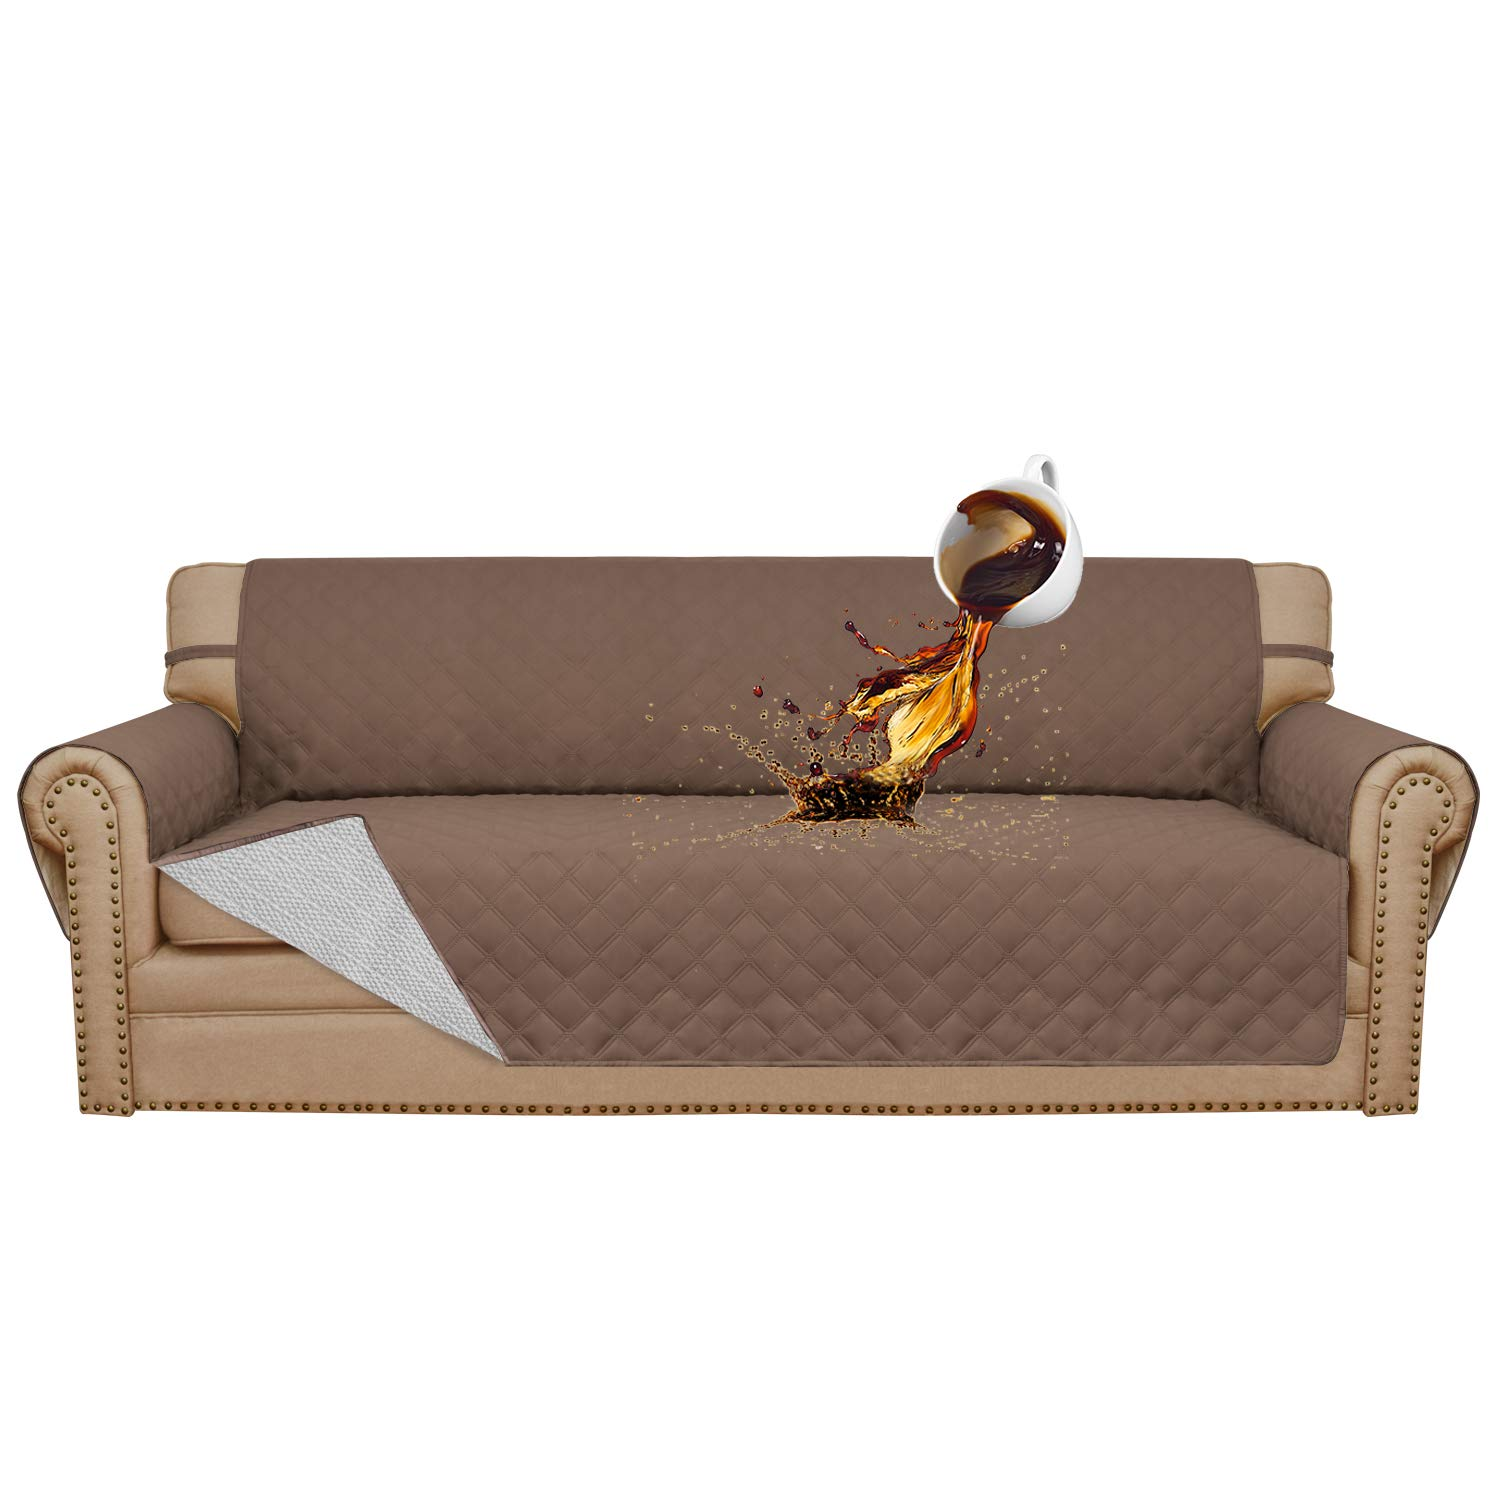 Easy-Going 100% Waterproof Sofa Slipcover Furniture Protector Couch Slipcover Pets Covers Whole Fabric No Stitching Slip Resistant Non-Slip Fabric Pets Kids Children Dog Cat(Sofa,Brown)